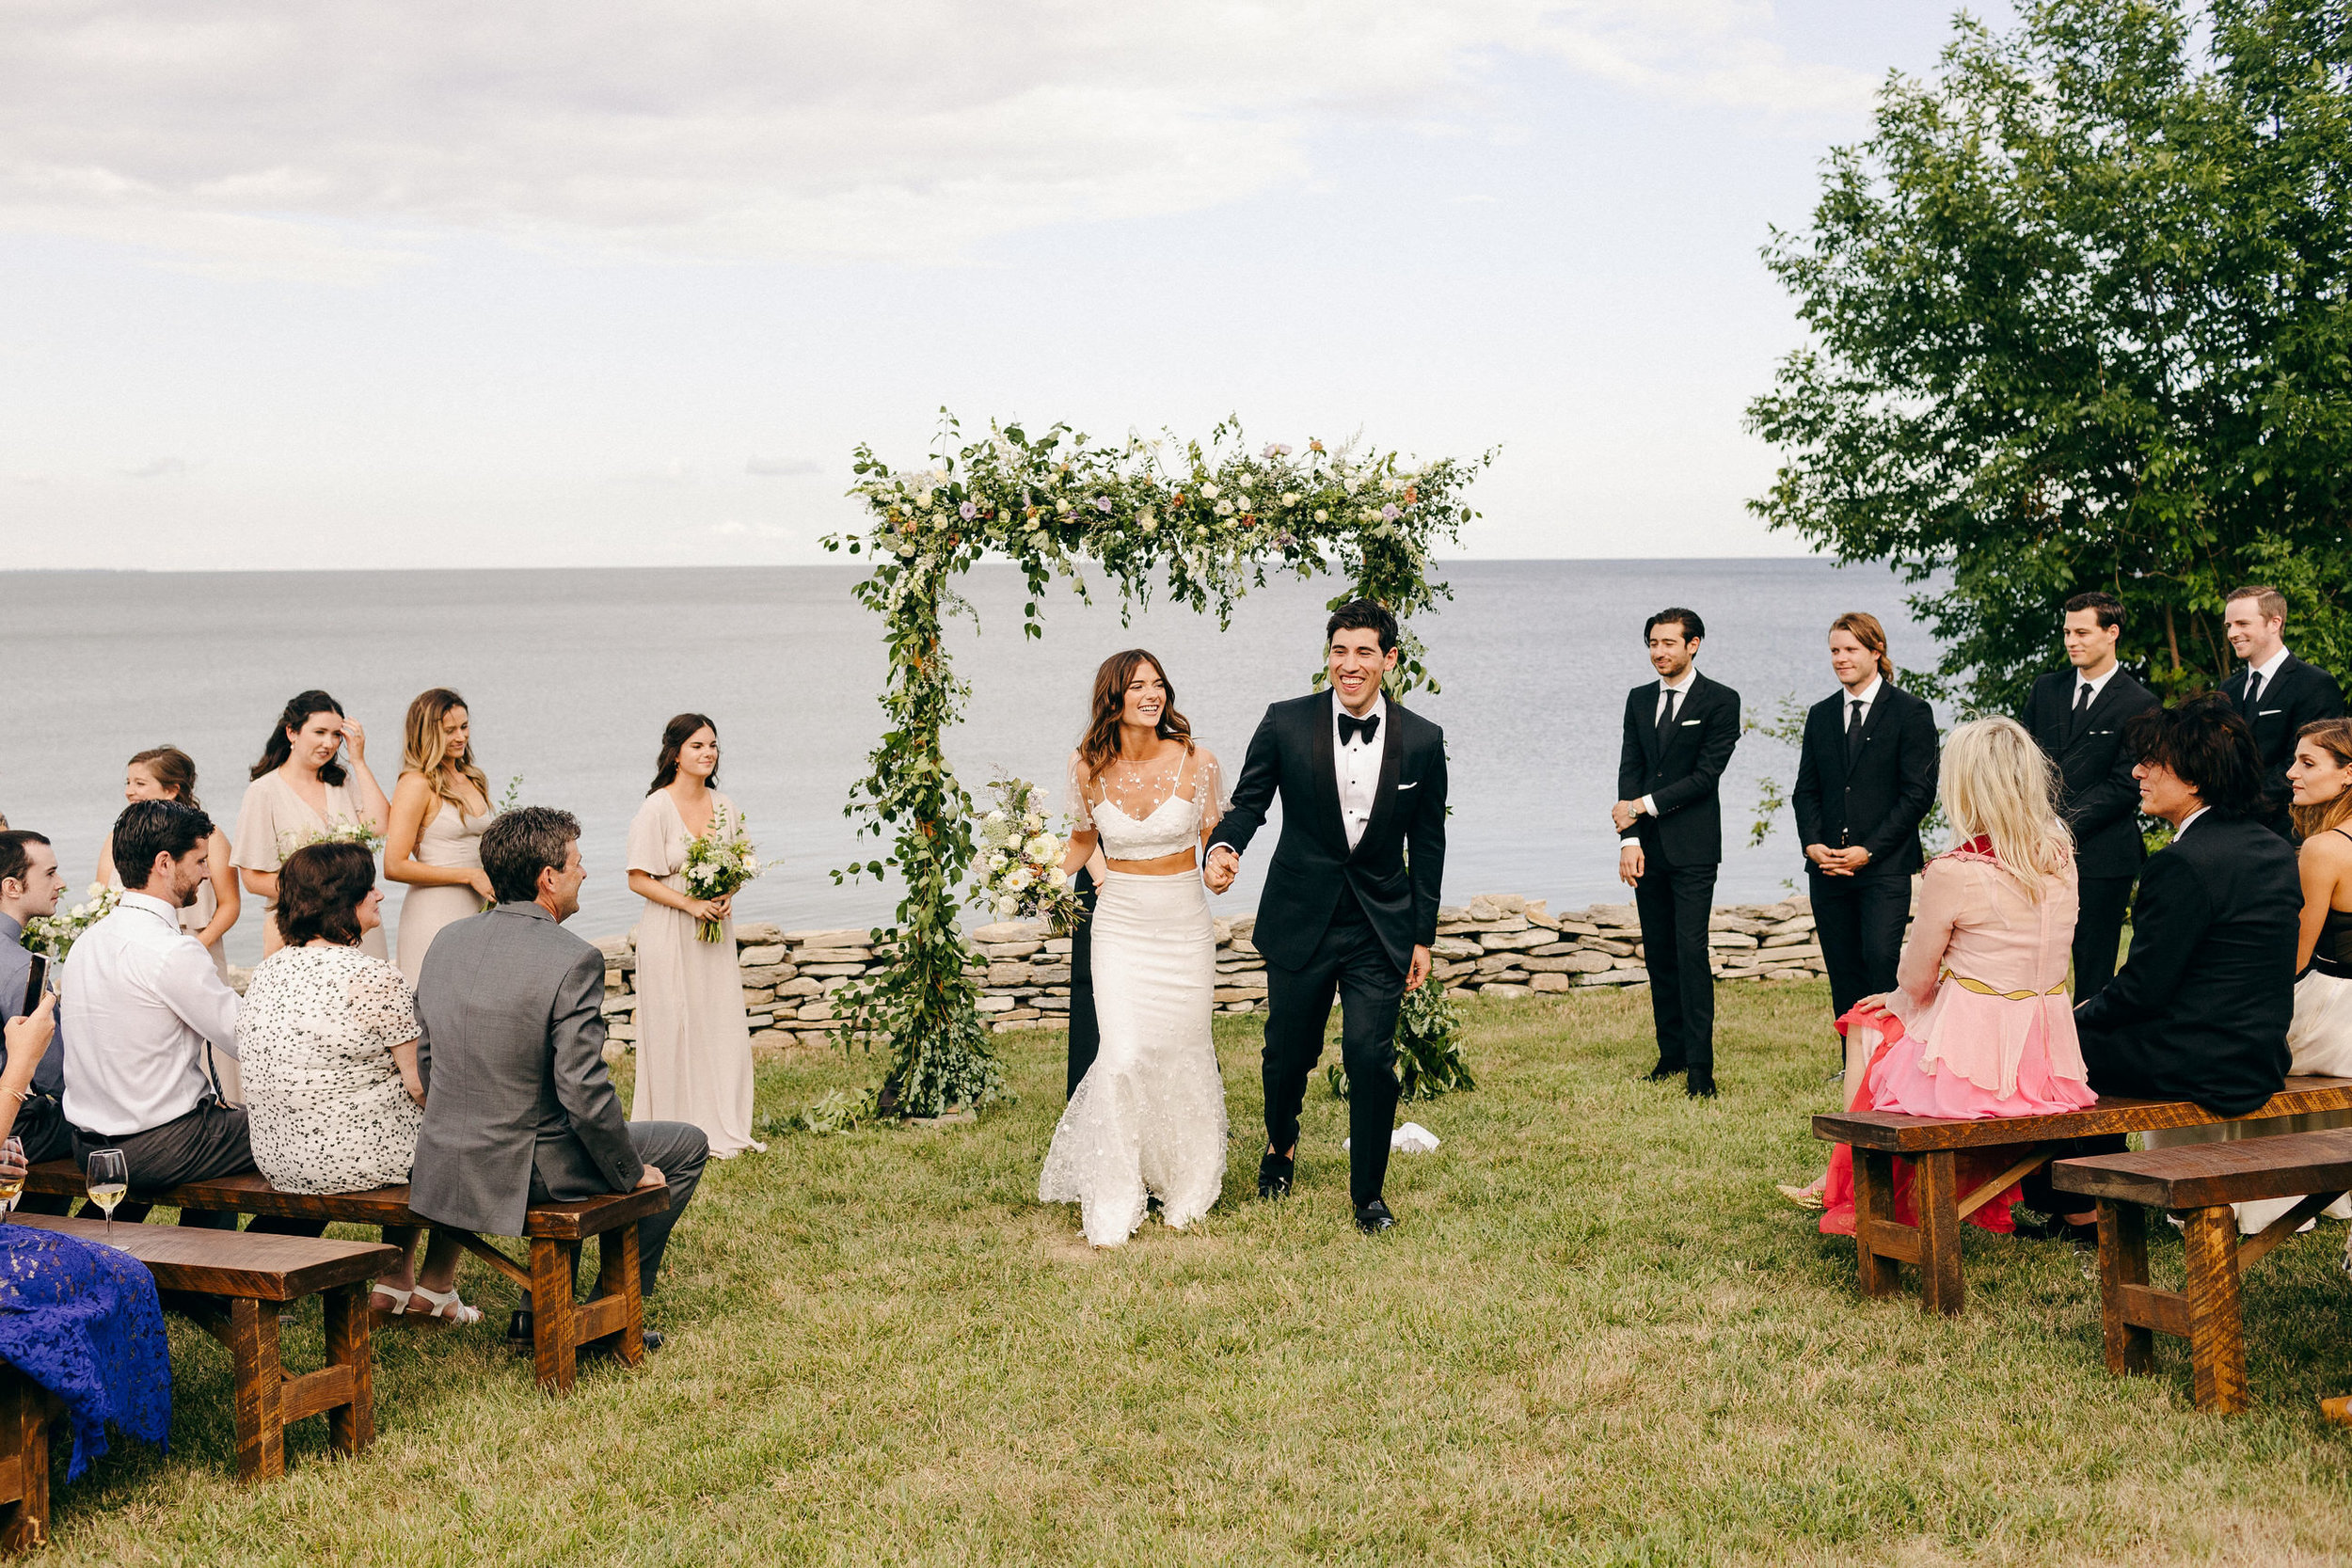 Waterfront wedding ceremony at Cressy House